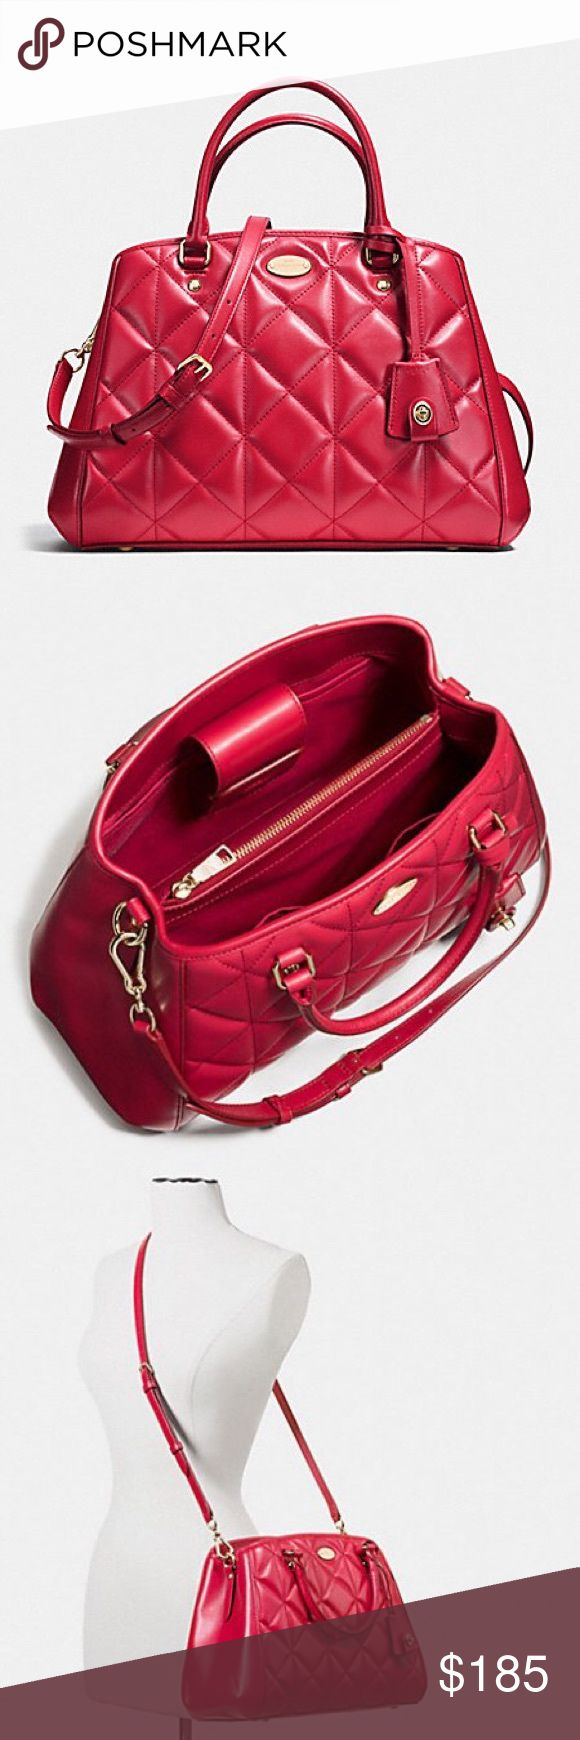 """New Coach quited small margot carryal satchel $495 New, never worn. Measure: 13""""L x 9""""H x 4.5""""W Coach Bags Satchels"""